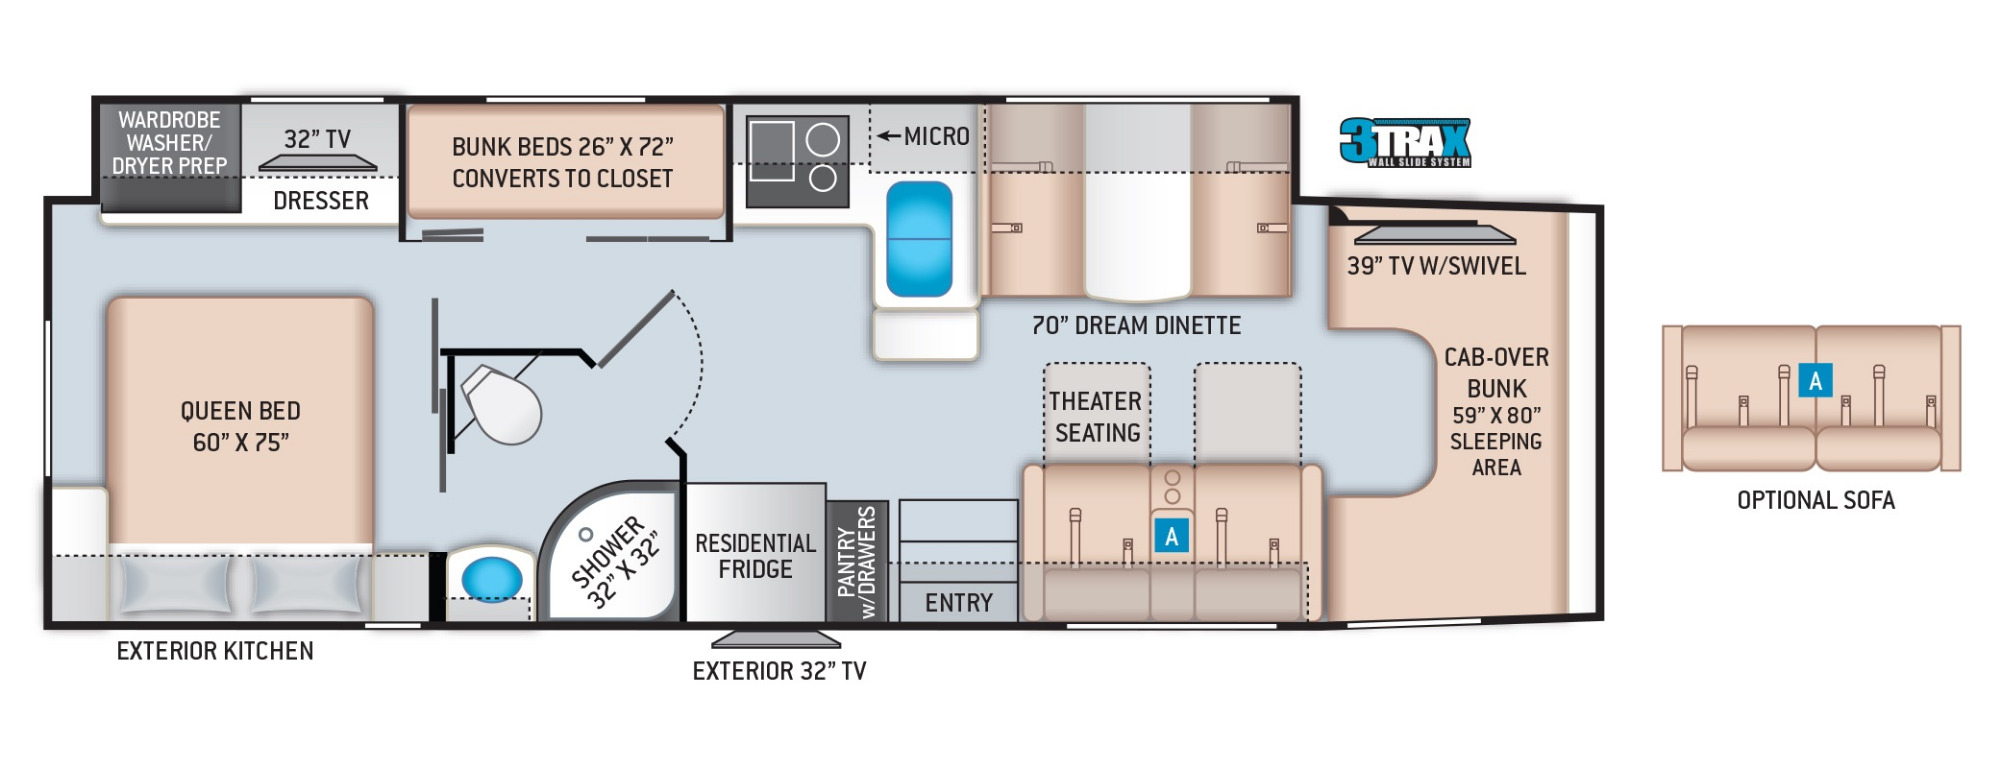 View Floor Plan for 2021 THOR MAGNITUDE RB34